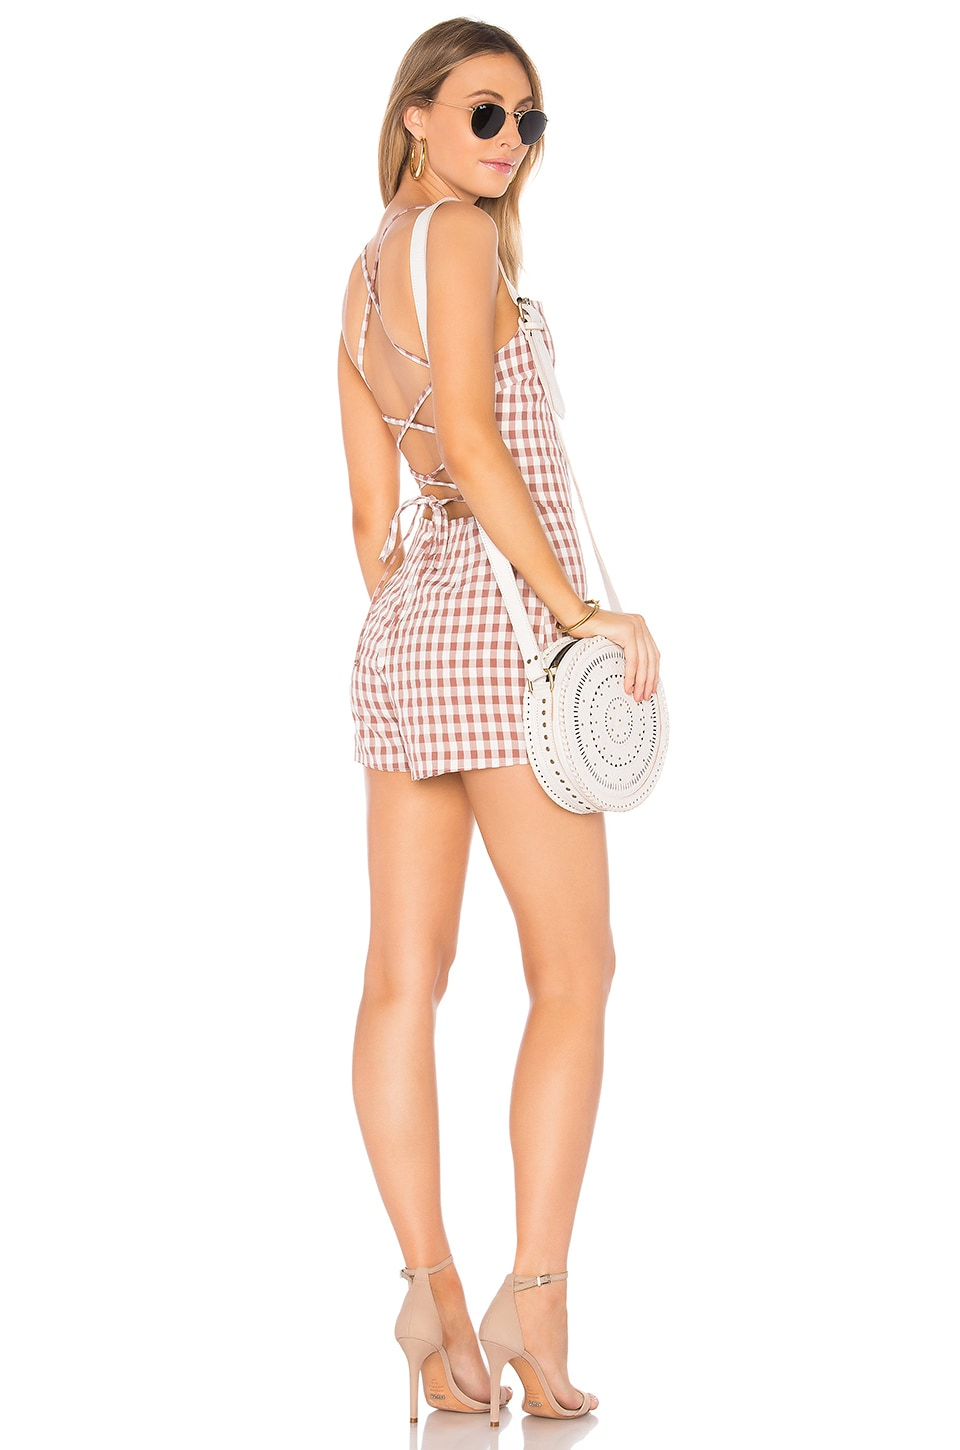 Privacy Please Feldspar Romper in Rose Gingham